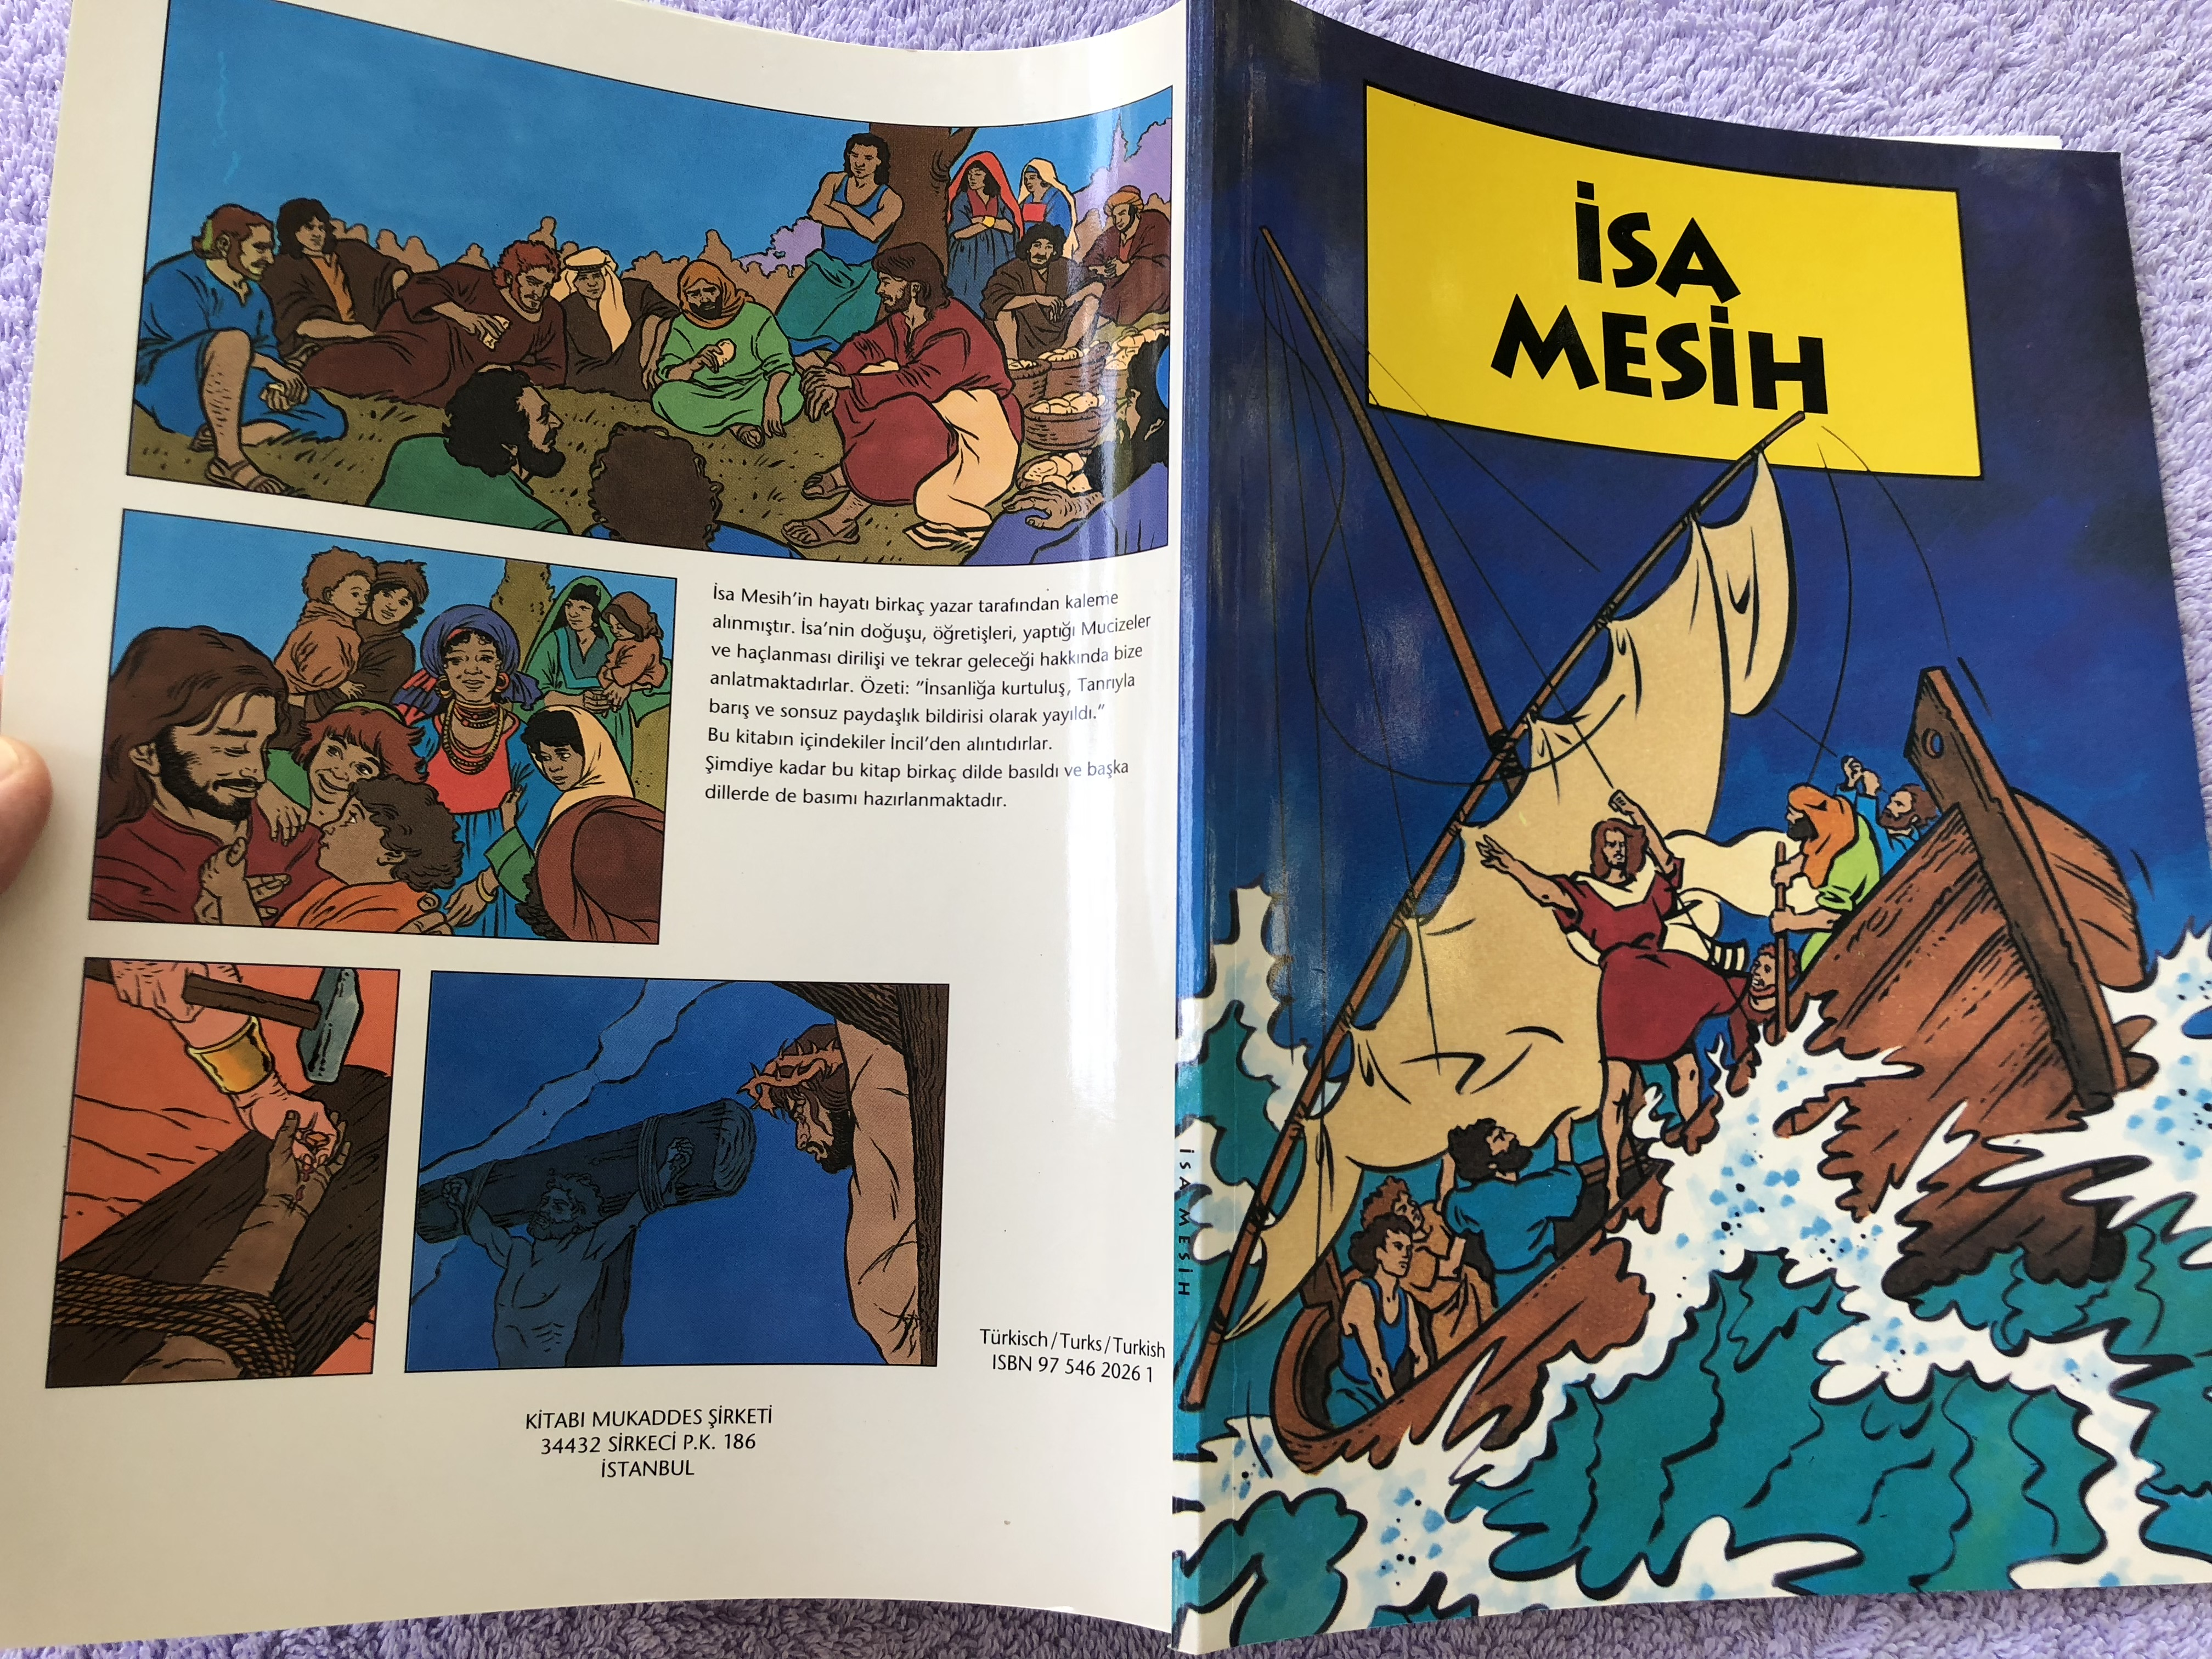 isa-mesih-turkish-comic-strip-bible-15-.jpg